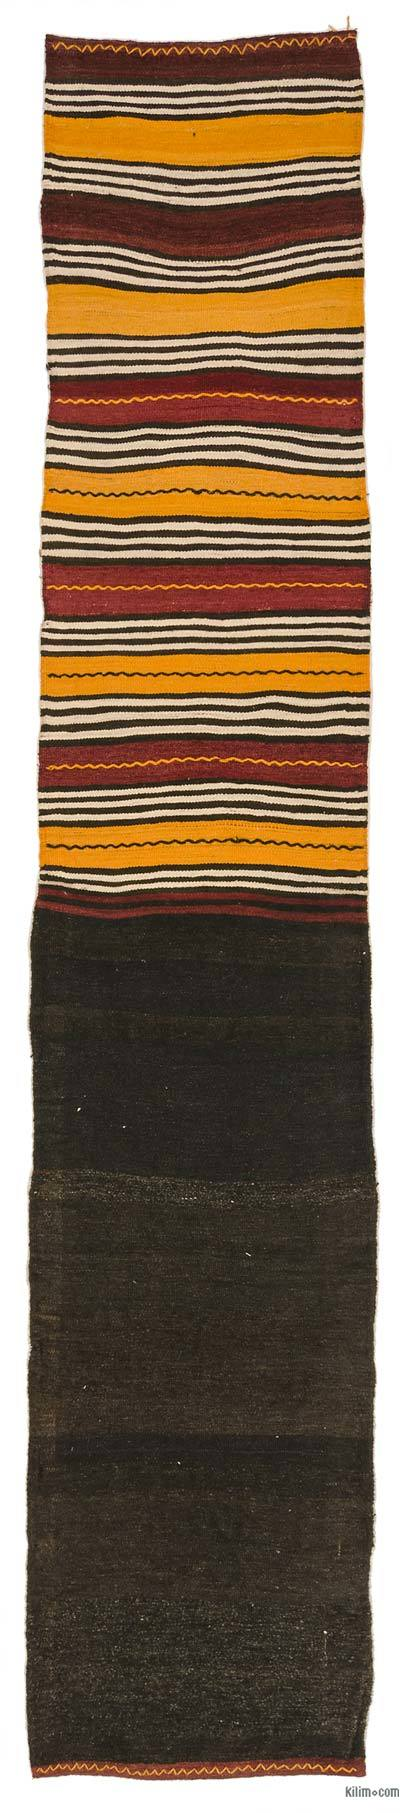 "Vintage Turkish Kilim Runner - 2'2"" x 10'8"" (26 in. x 128 in.)"